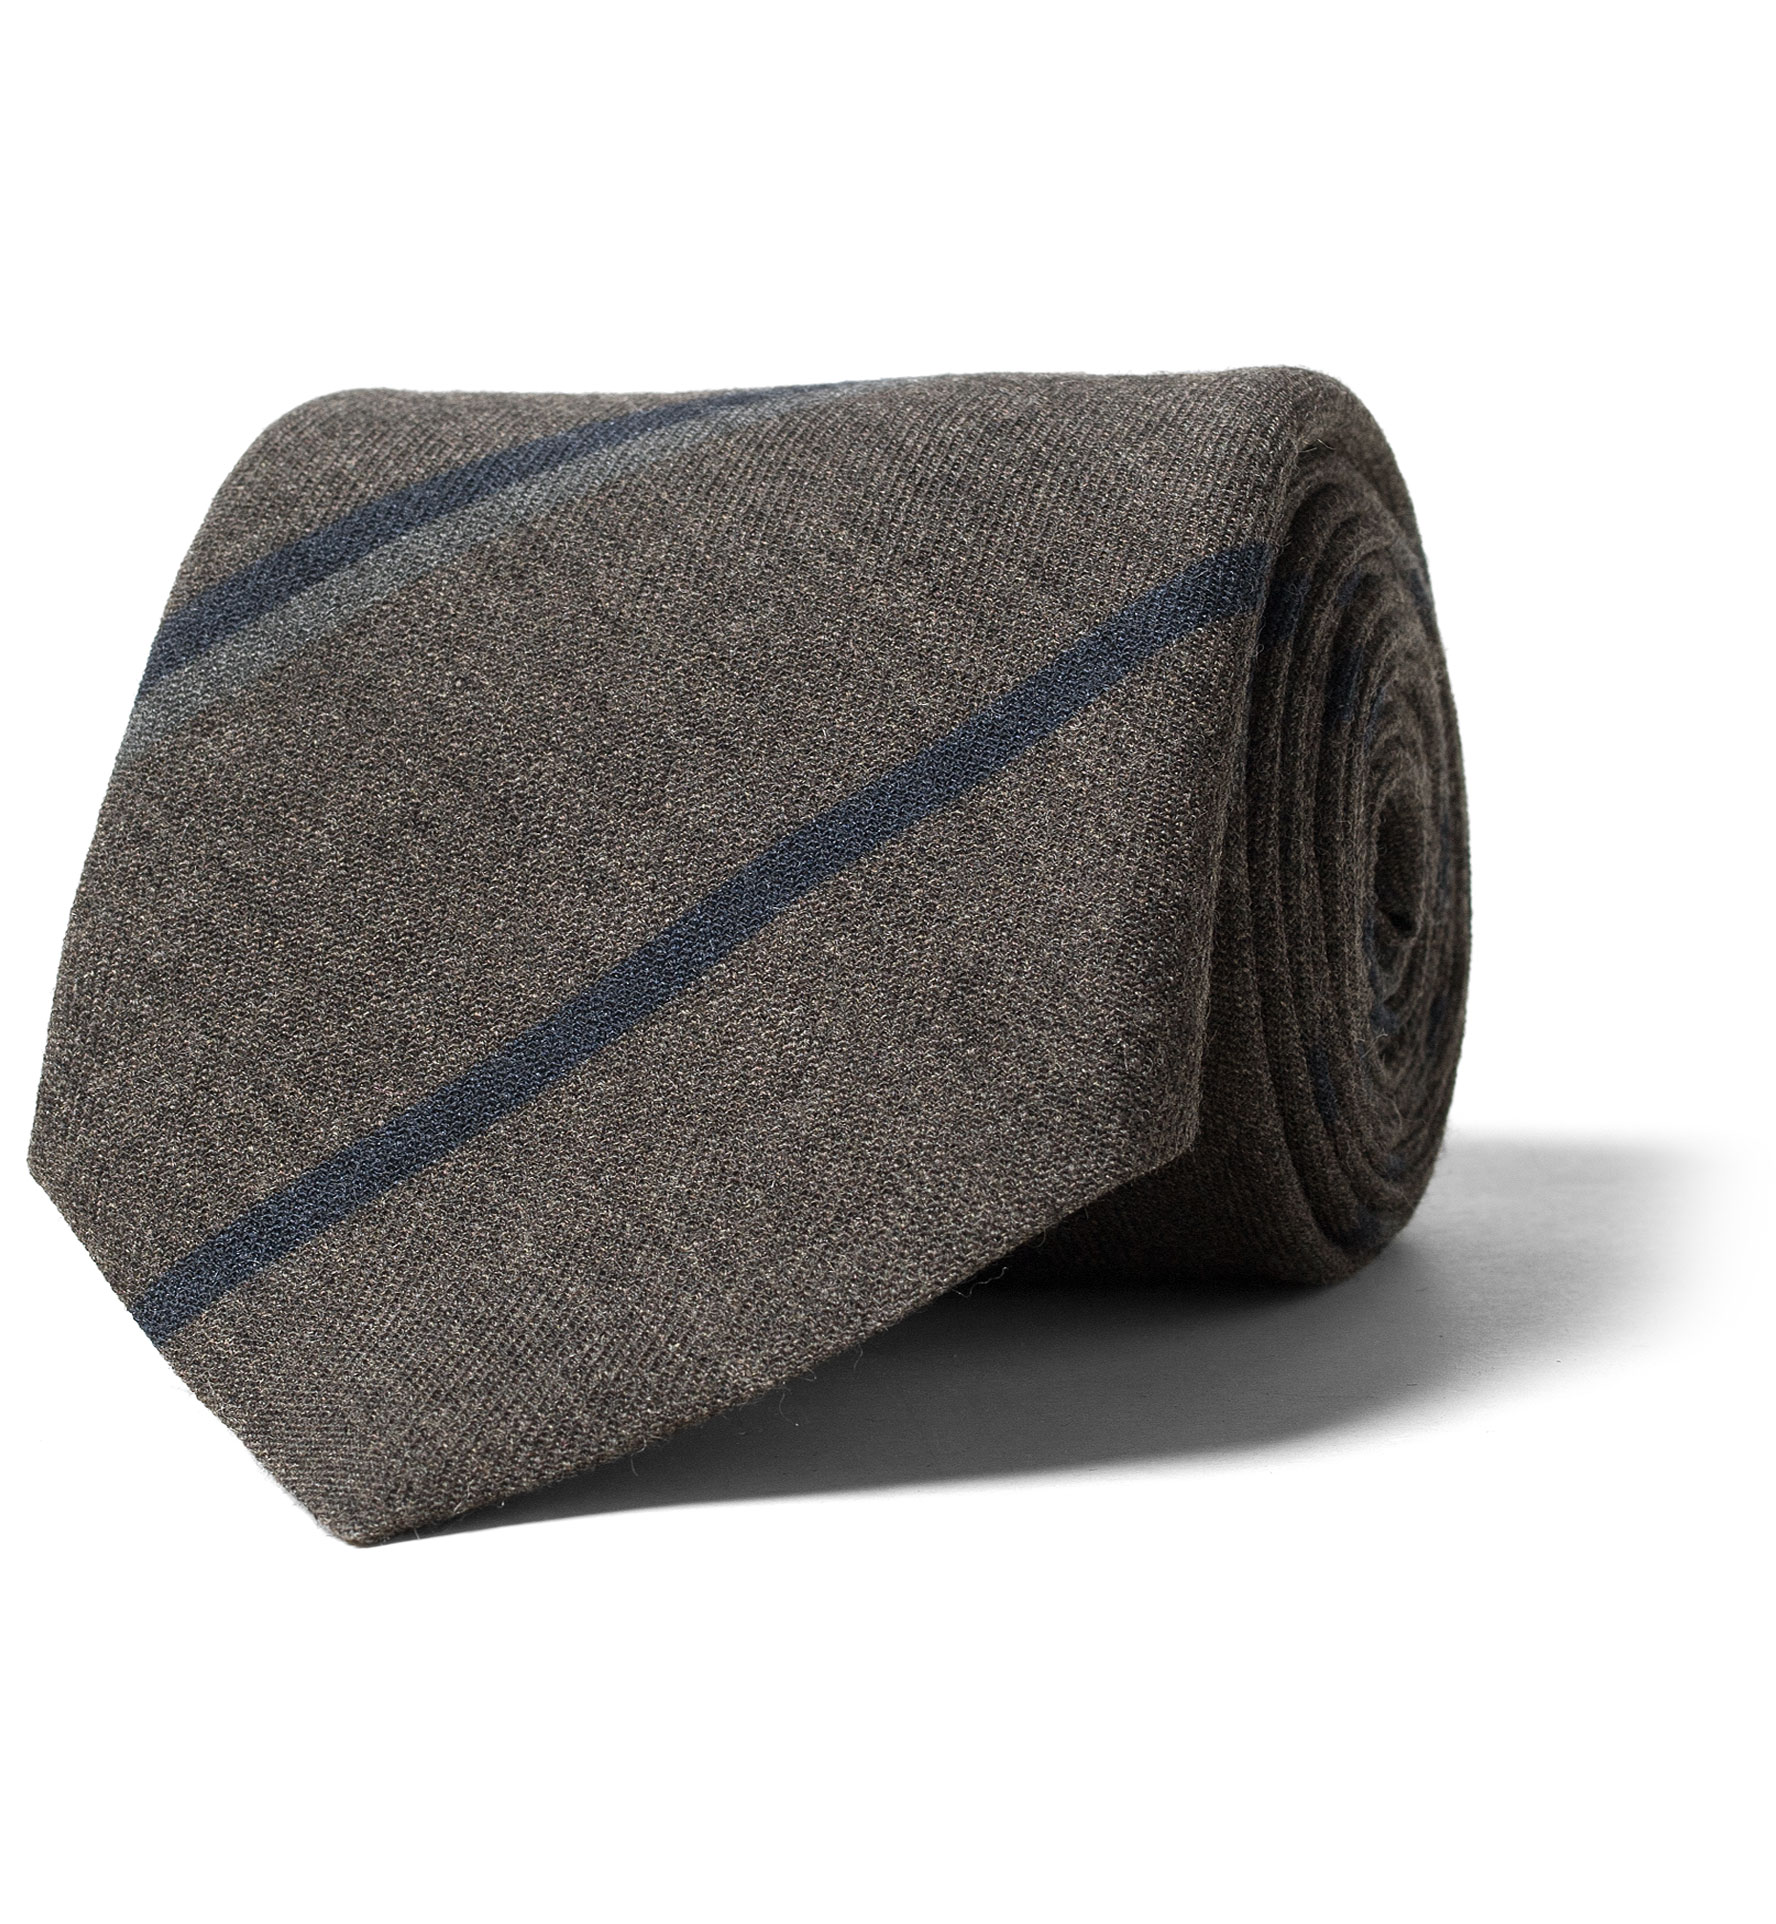 Zoom Image of Taupe and Navy Striped Wool Tie